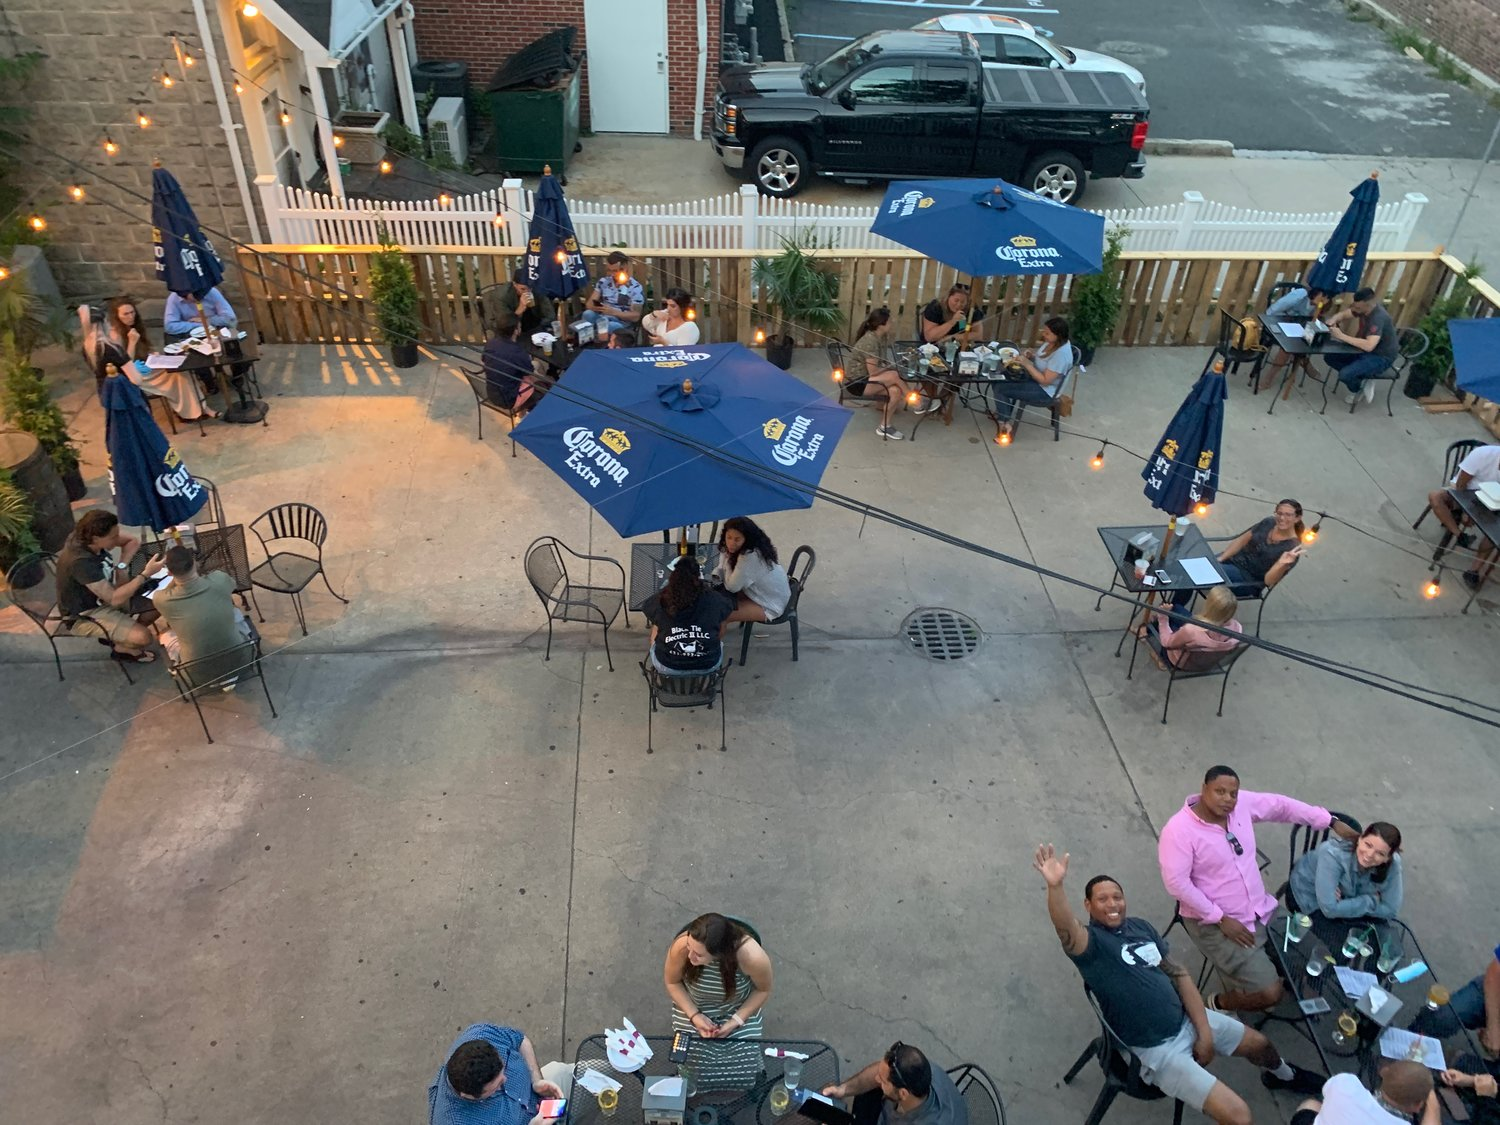 Diners filled the 6-foot-apart tables at the Tap Room during the first night of the reopening to outdoor dining on Wednesday, June 10.